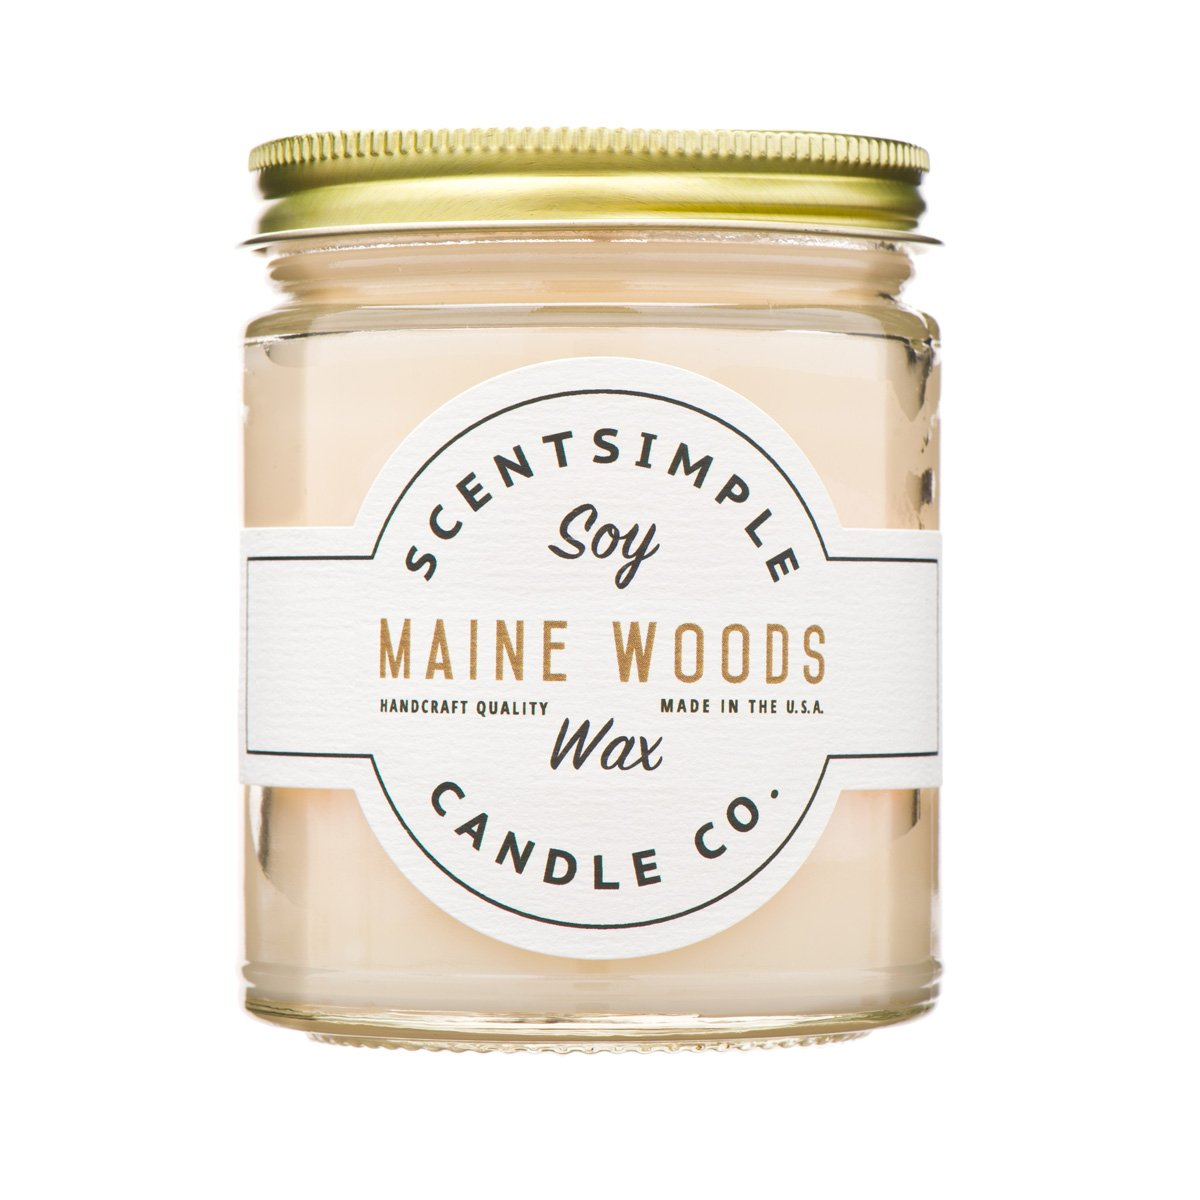 ScentSimple Scented Soy Candles Maine Woods Scent - Pine, Balsam Fir & Cedar